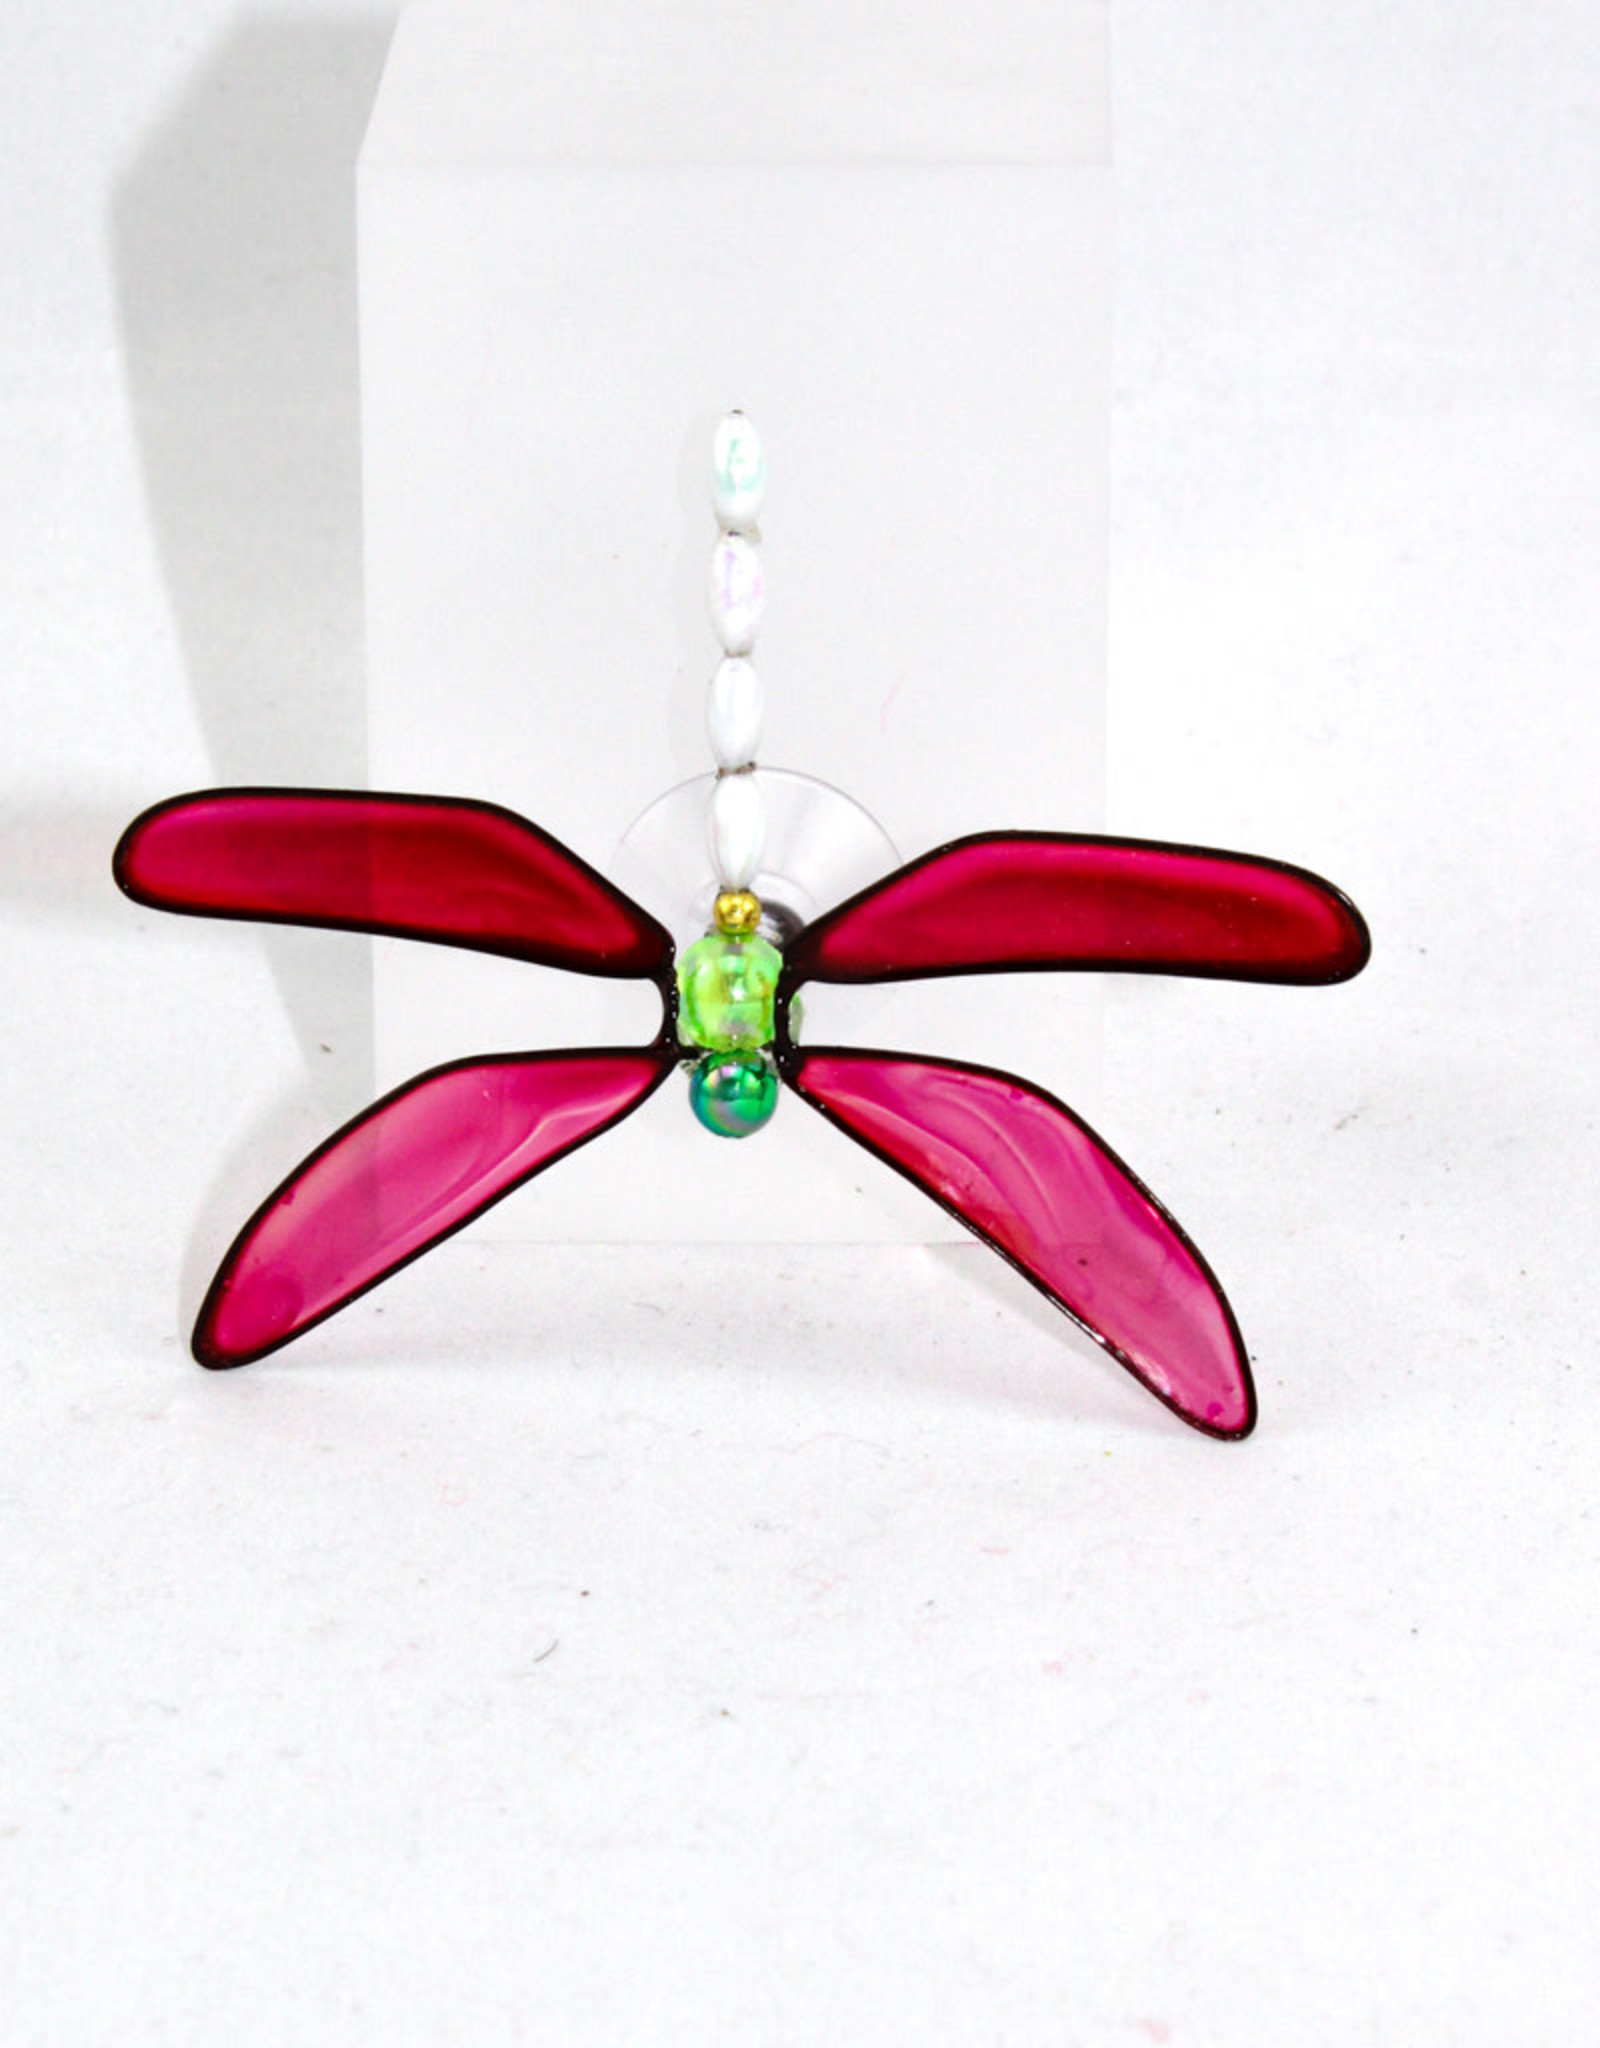 BUGZ Workshop Inc. Dragonfly suction cup Red